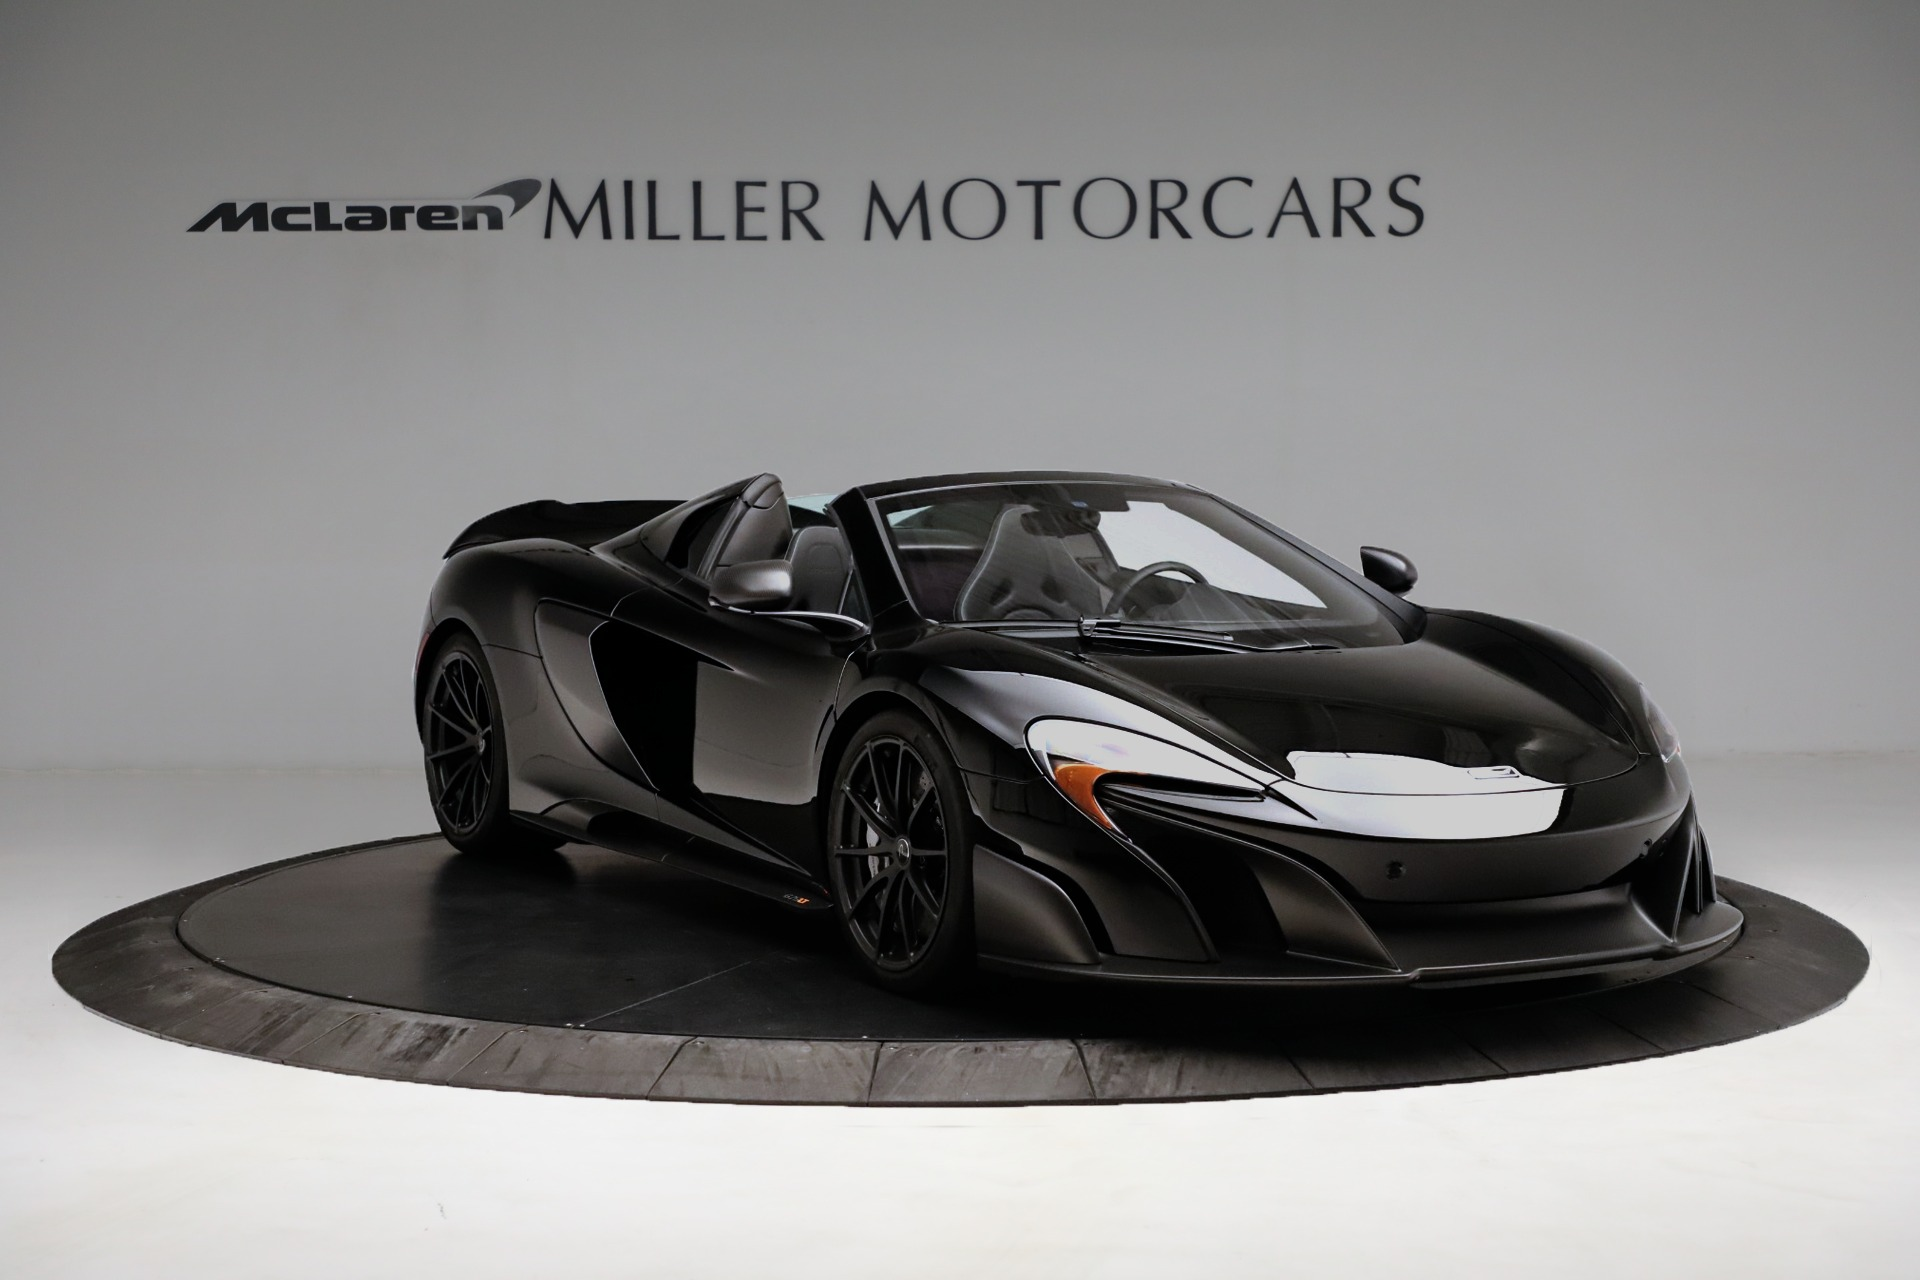 Used 2016 McLaren 675LT Spider For Sale In Westport, CT 3455_p11